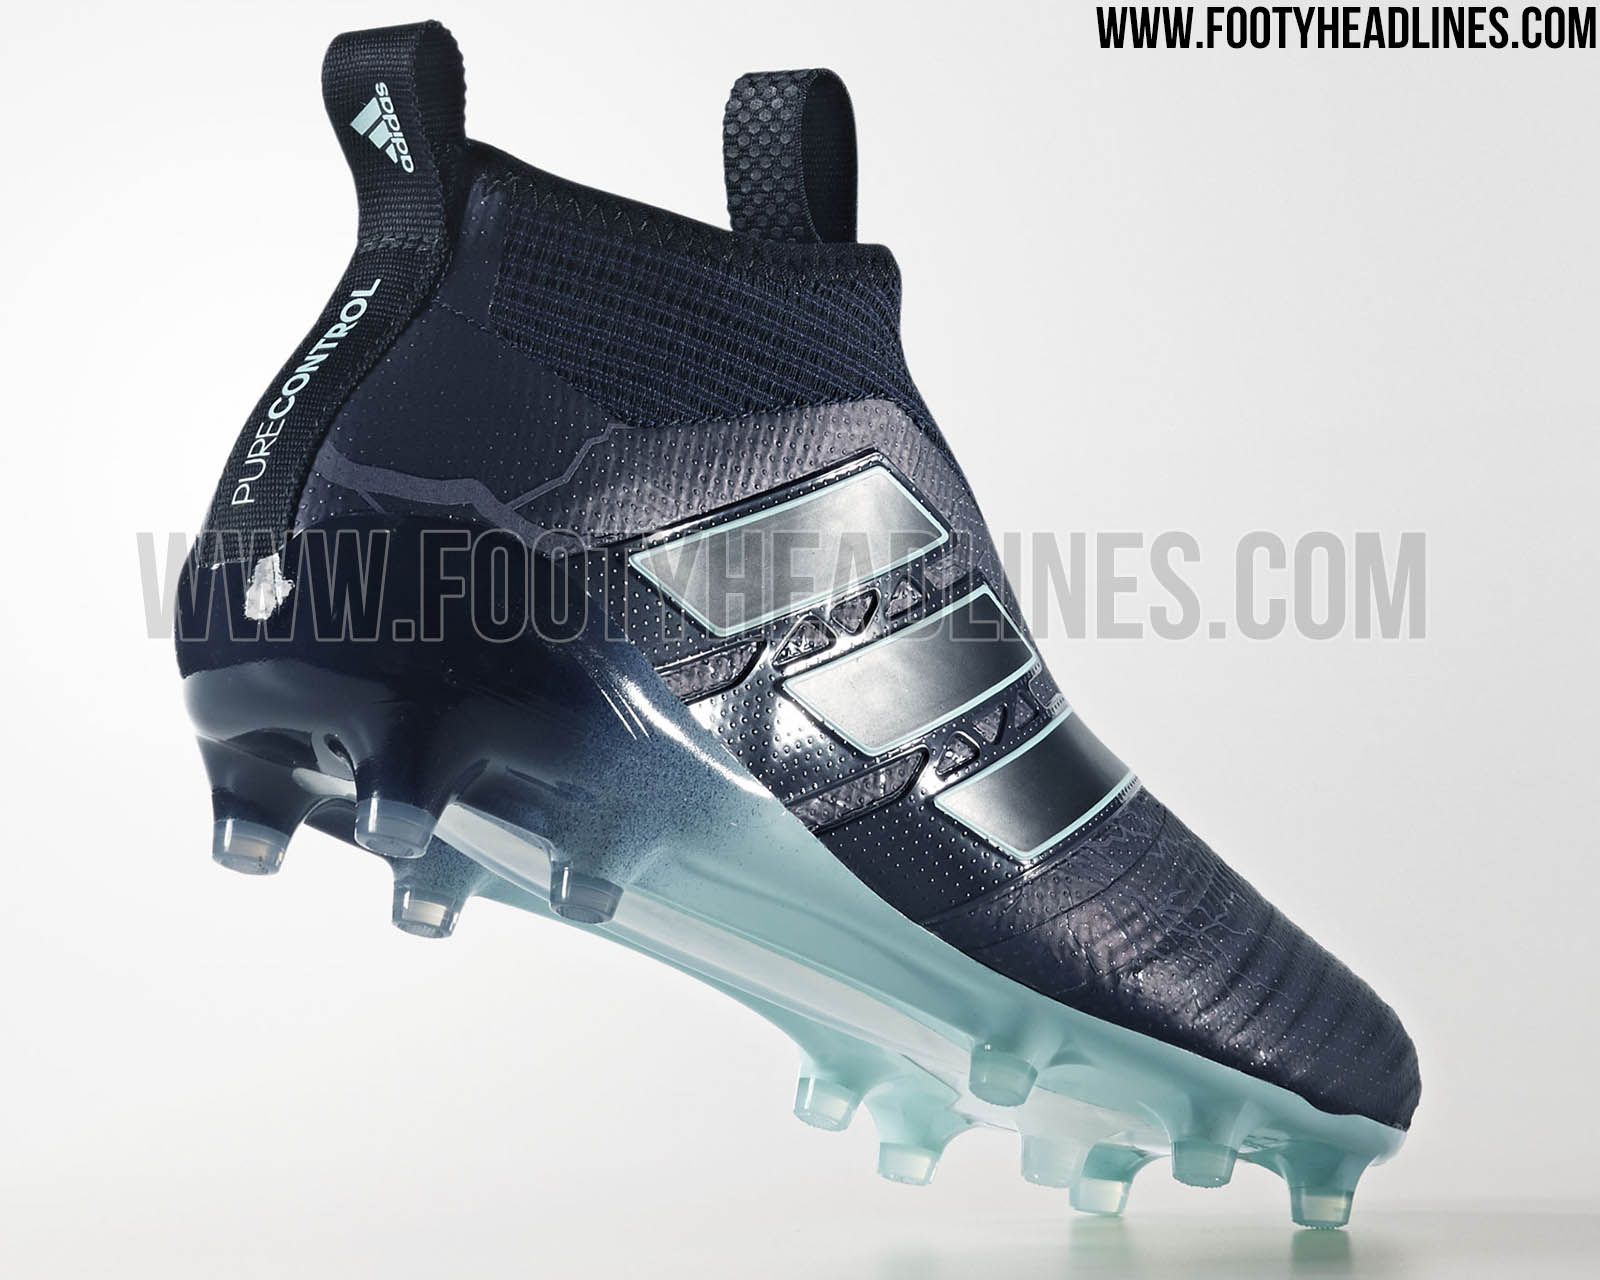 251ed753d403 Special-Edition Adidas Ace PureControl 2017-2018  Thunderstorm  Boots Leaked  - Footy Headlines